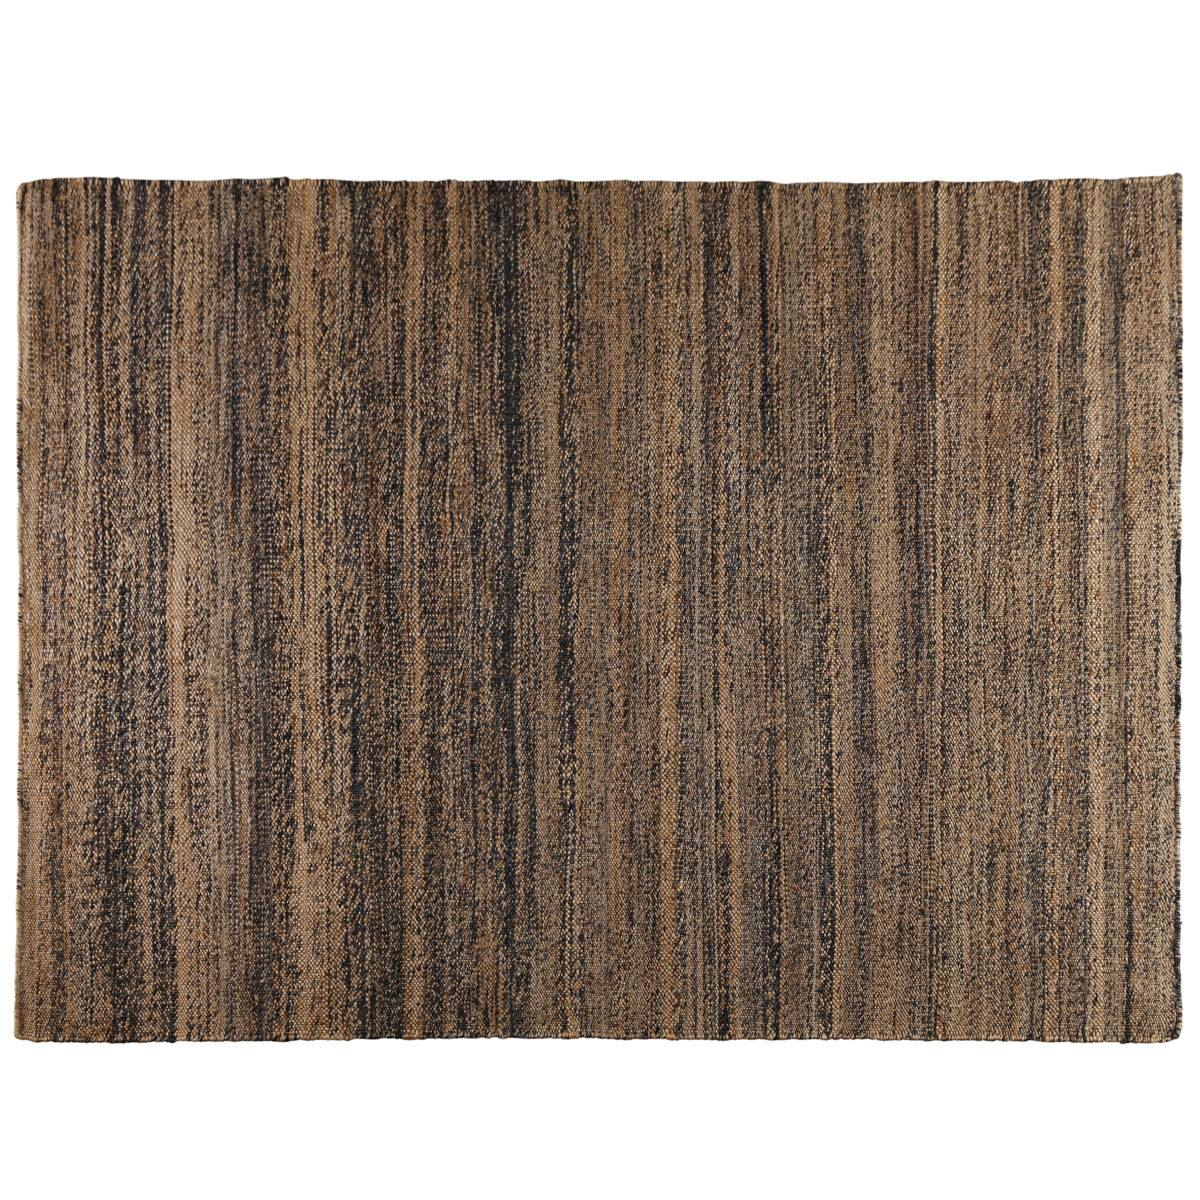 "Zago ""Tapis en chanvre naturel 200 x 300 cm Stripes - ZAGO"""